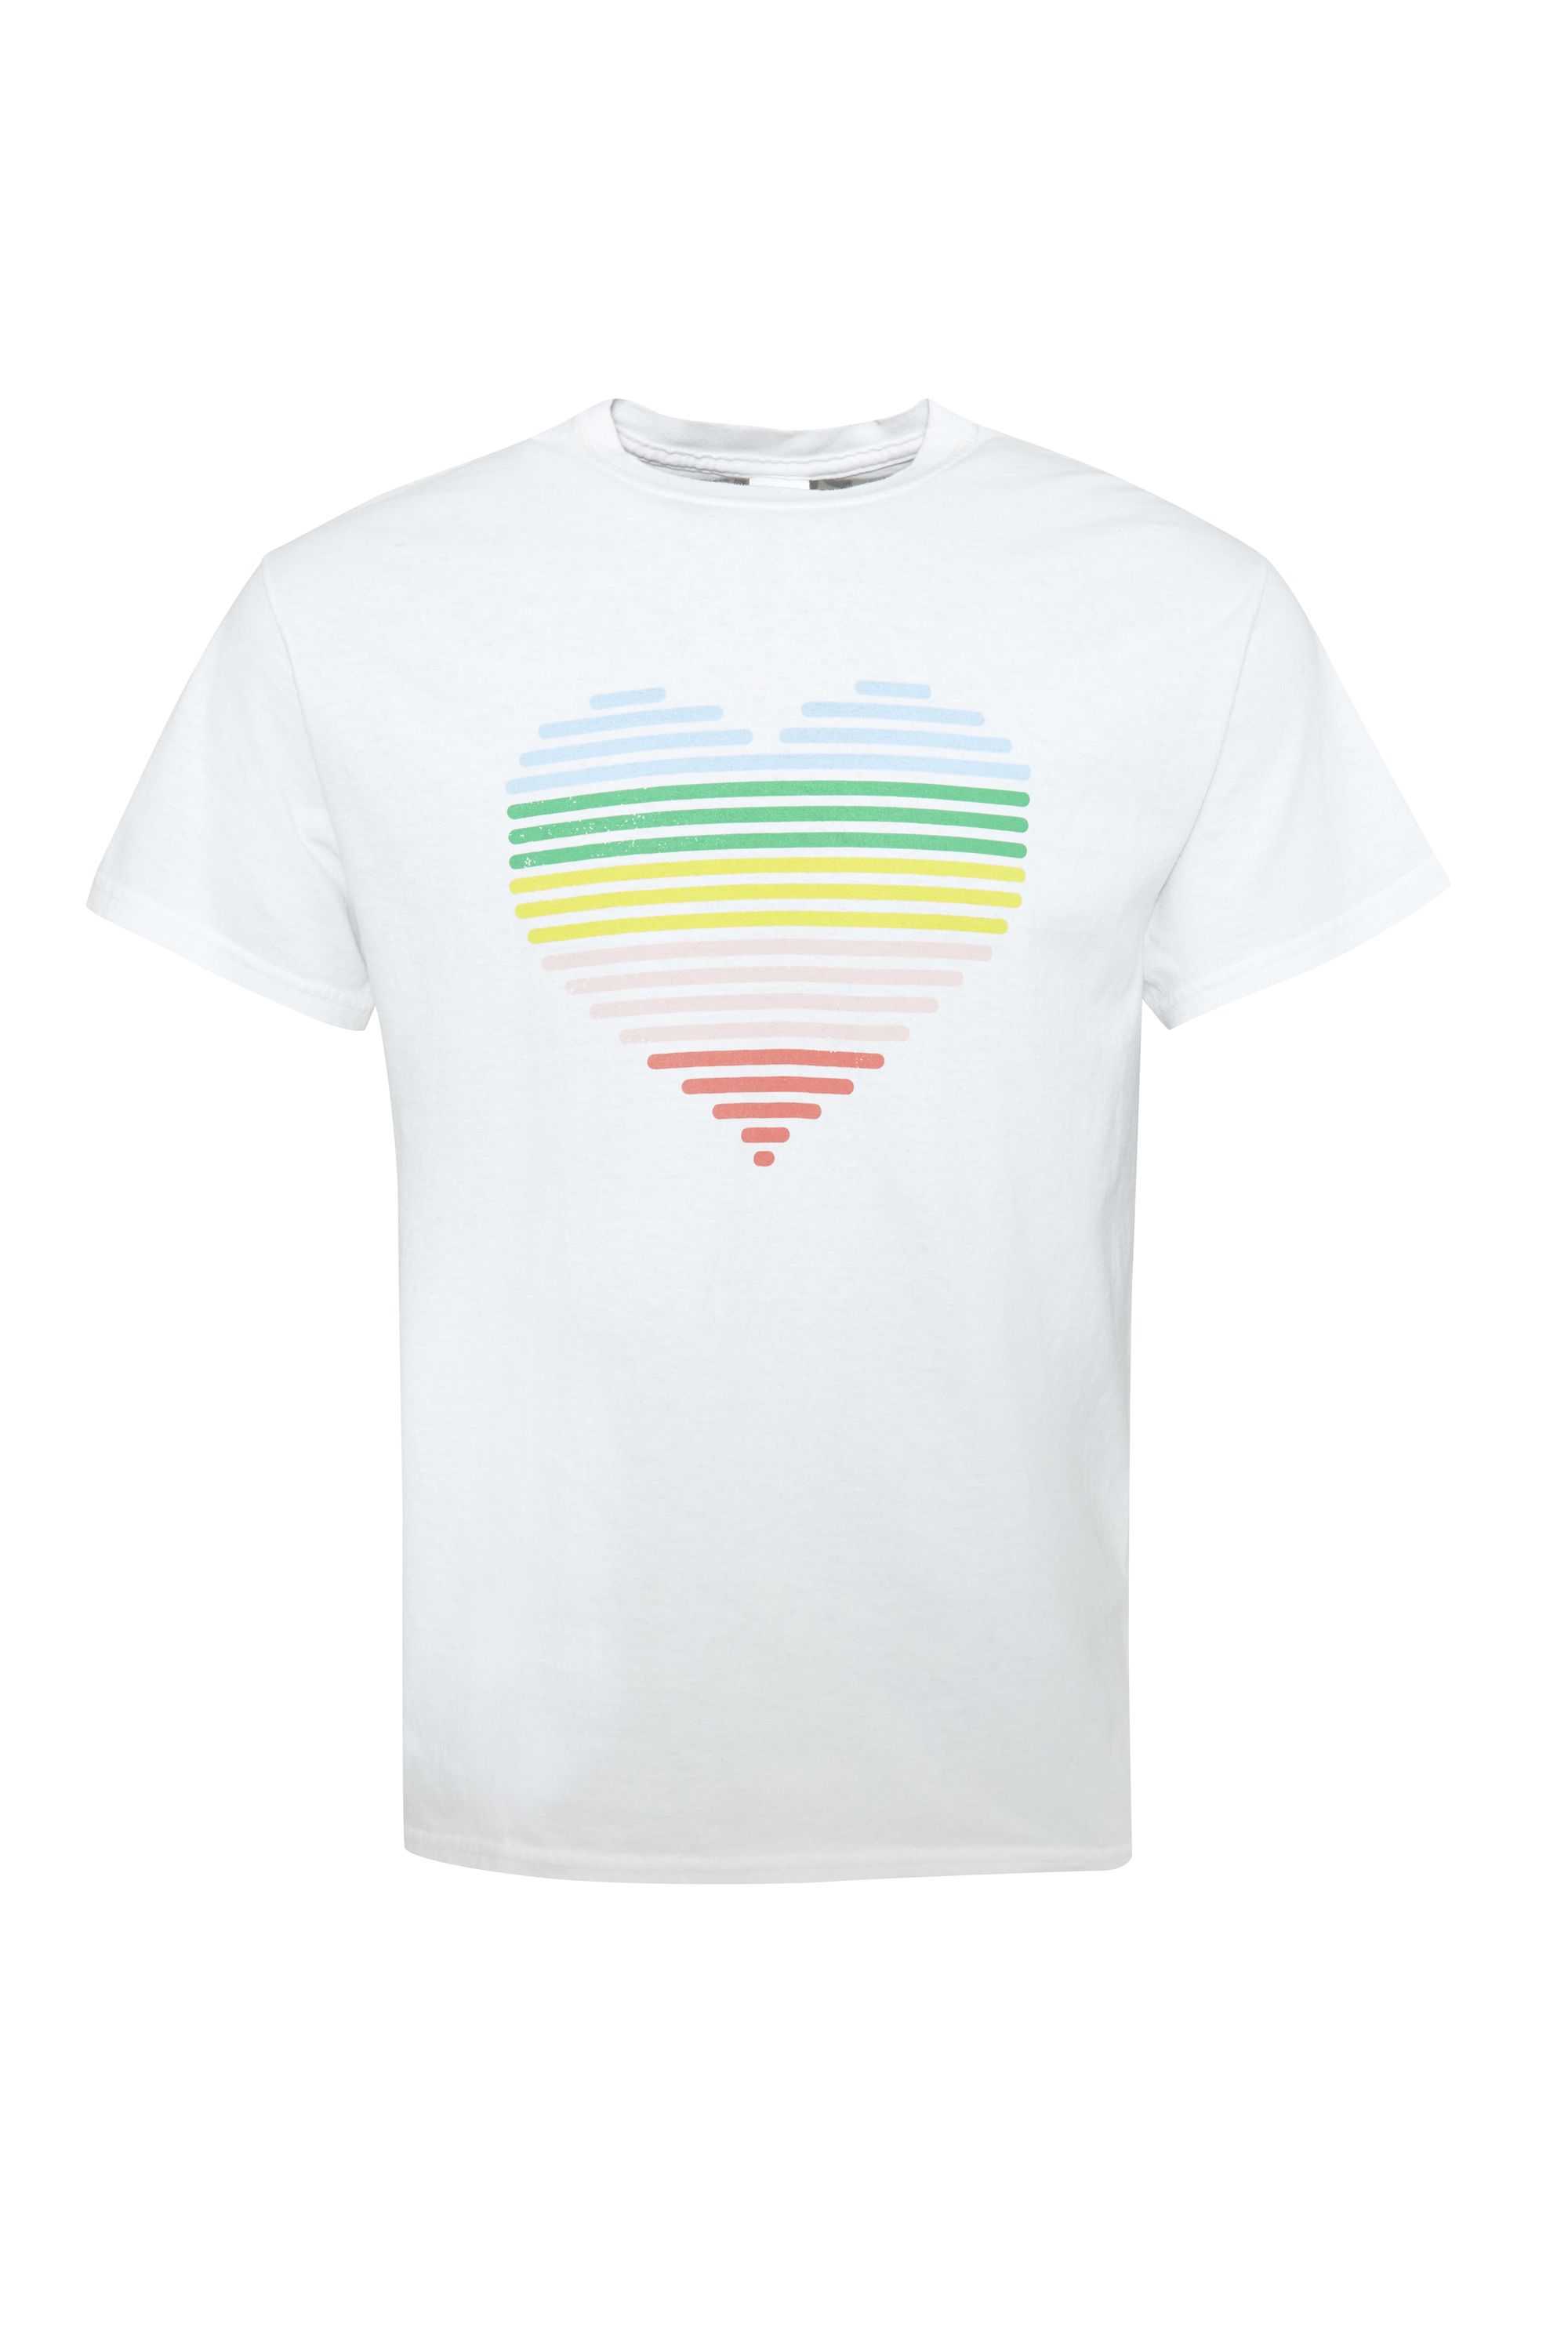 Urban Outfitters PRIDE t-shirt £22 or €29.jpg